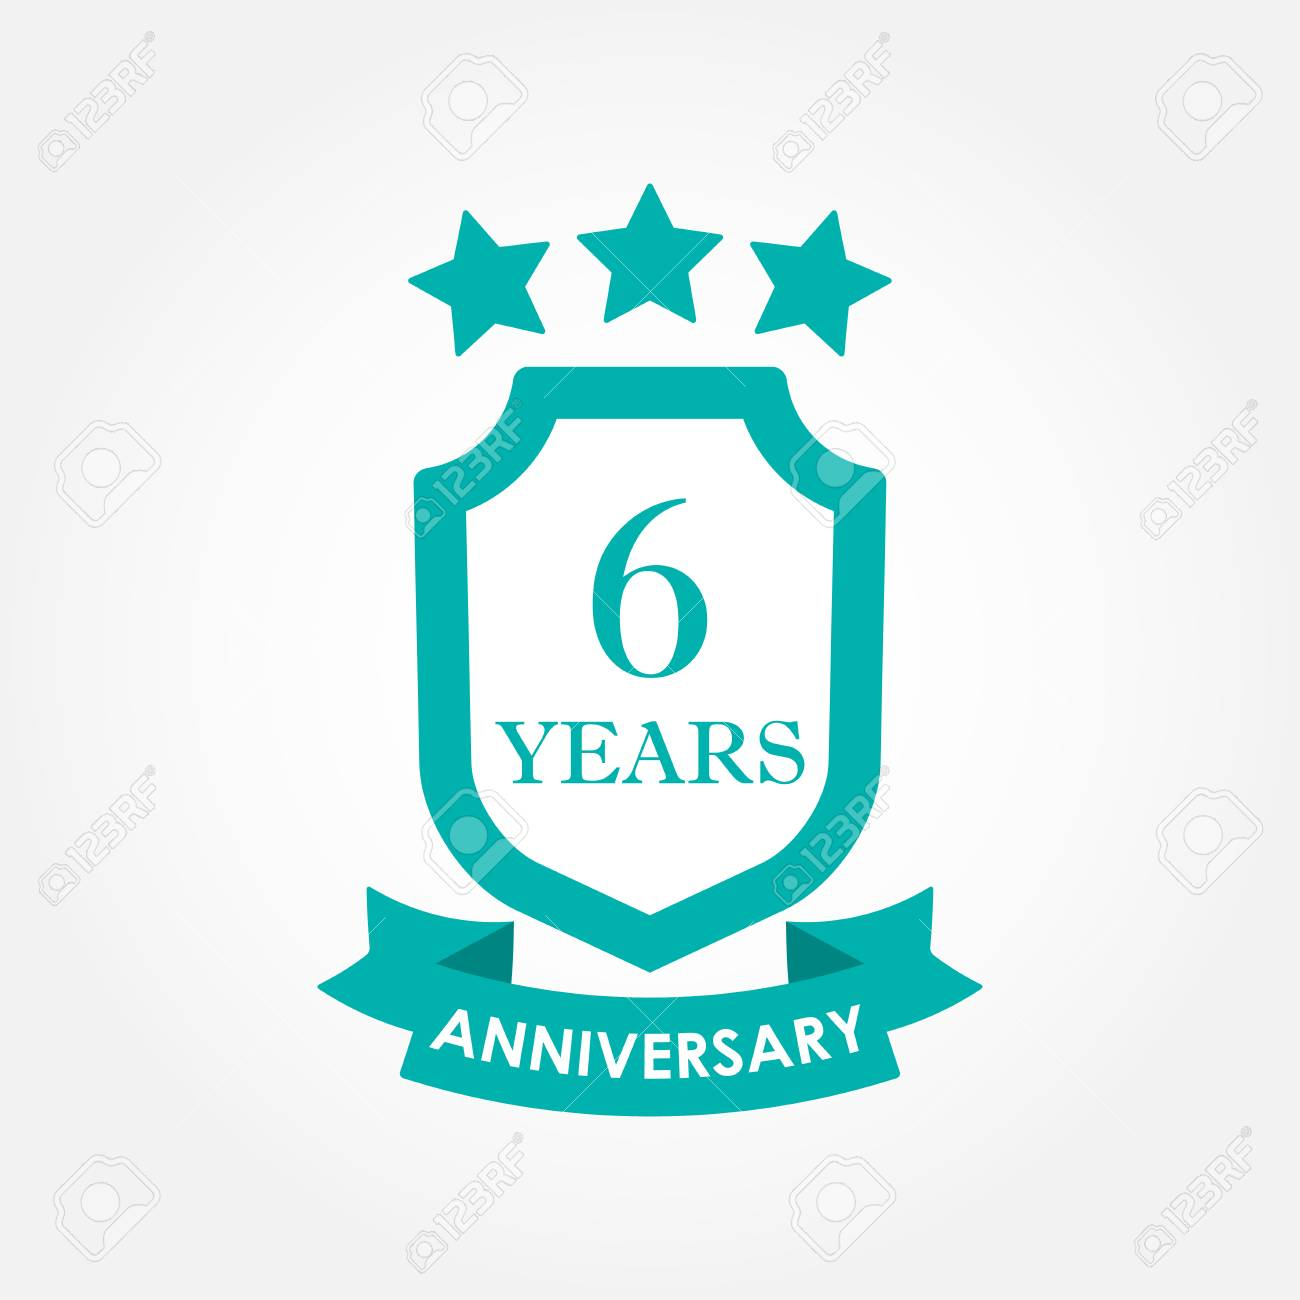 6 Years Anniversary Icon Or Emblem 6th Anniversary Label Celebration Royalty Free Cliparts Vectors And Stock Illustration Image 106956017